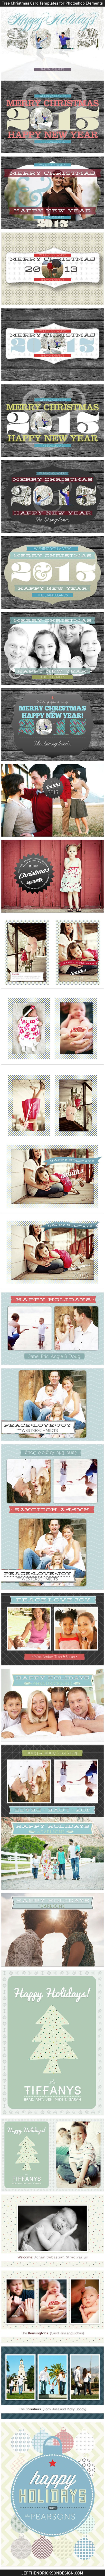 christmas holiday card templates for photoshop elements 29 christmas holiday card templates for photoshop elements hi res printable